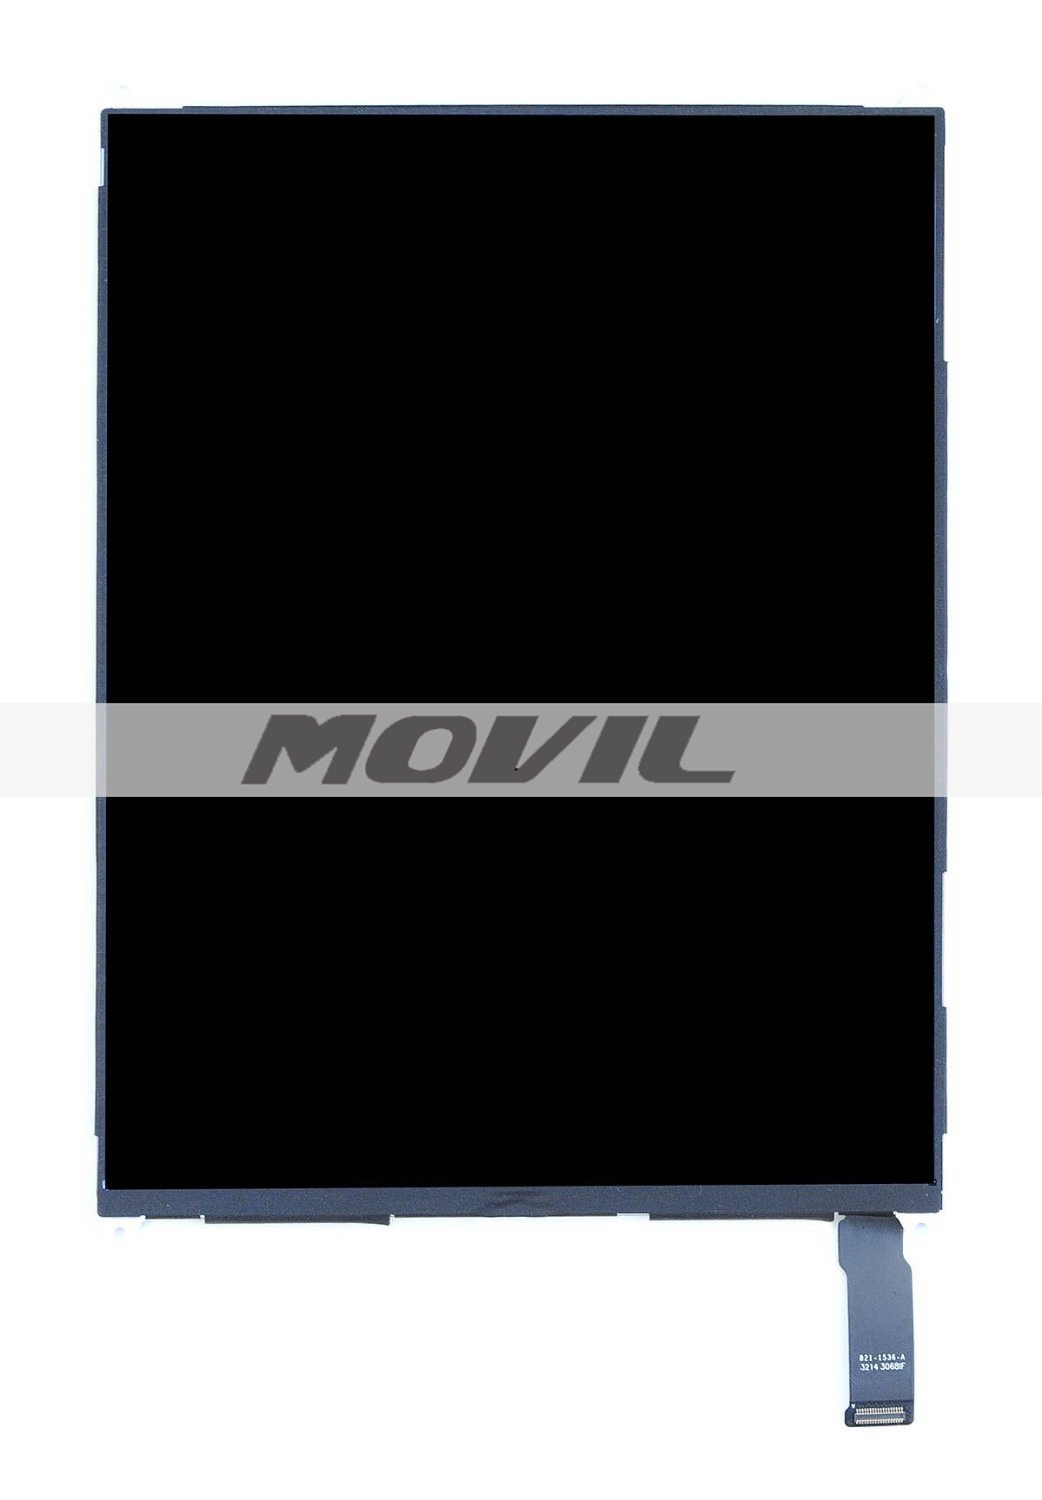 LCD Display Replacement for Apple iPad Mini Model A1432 A1454 and A1455